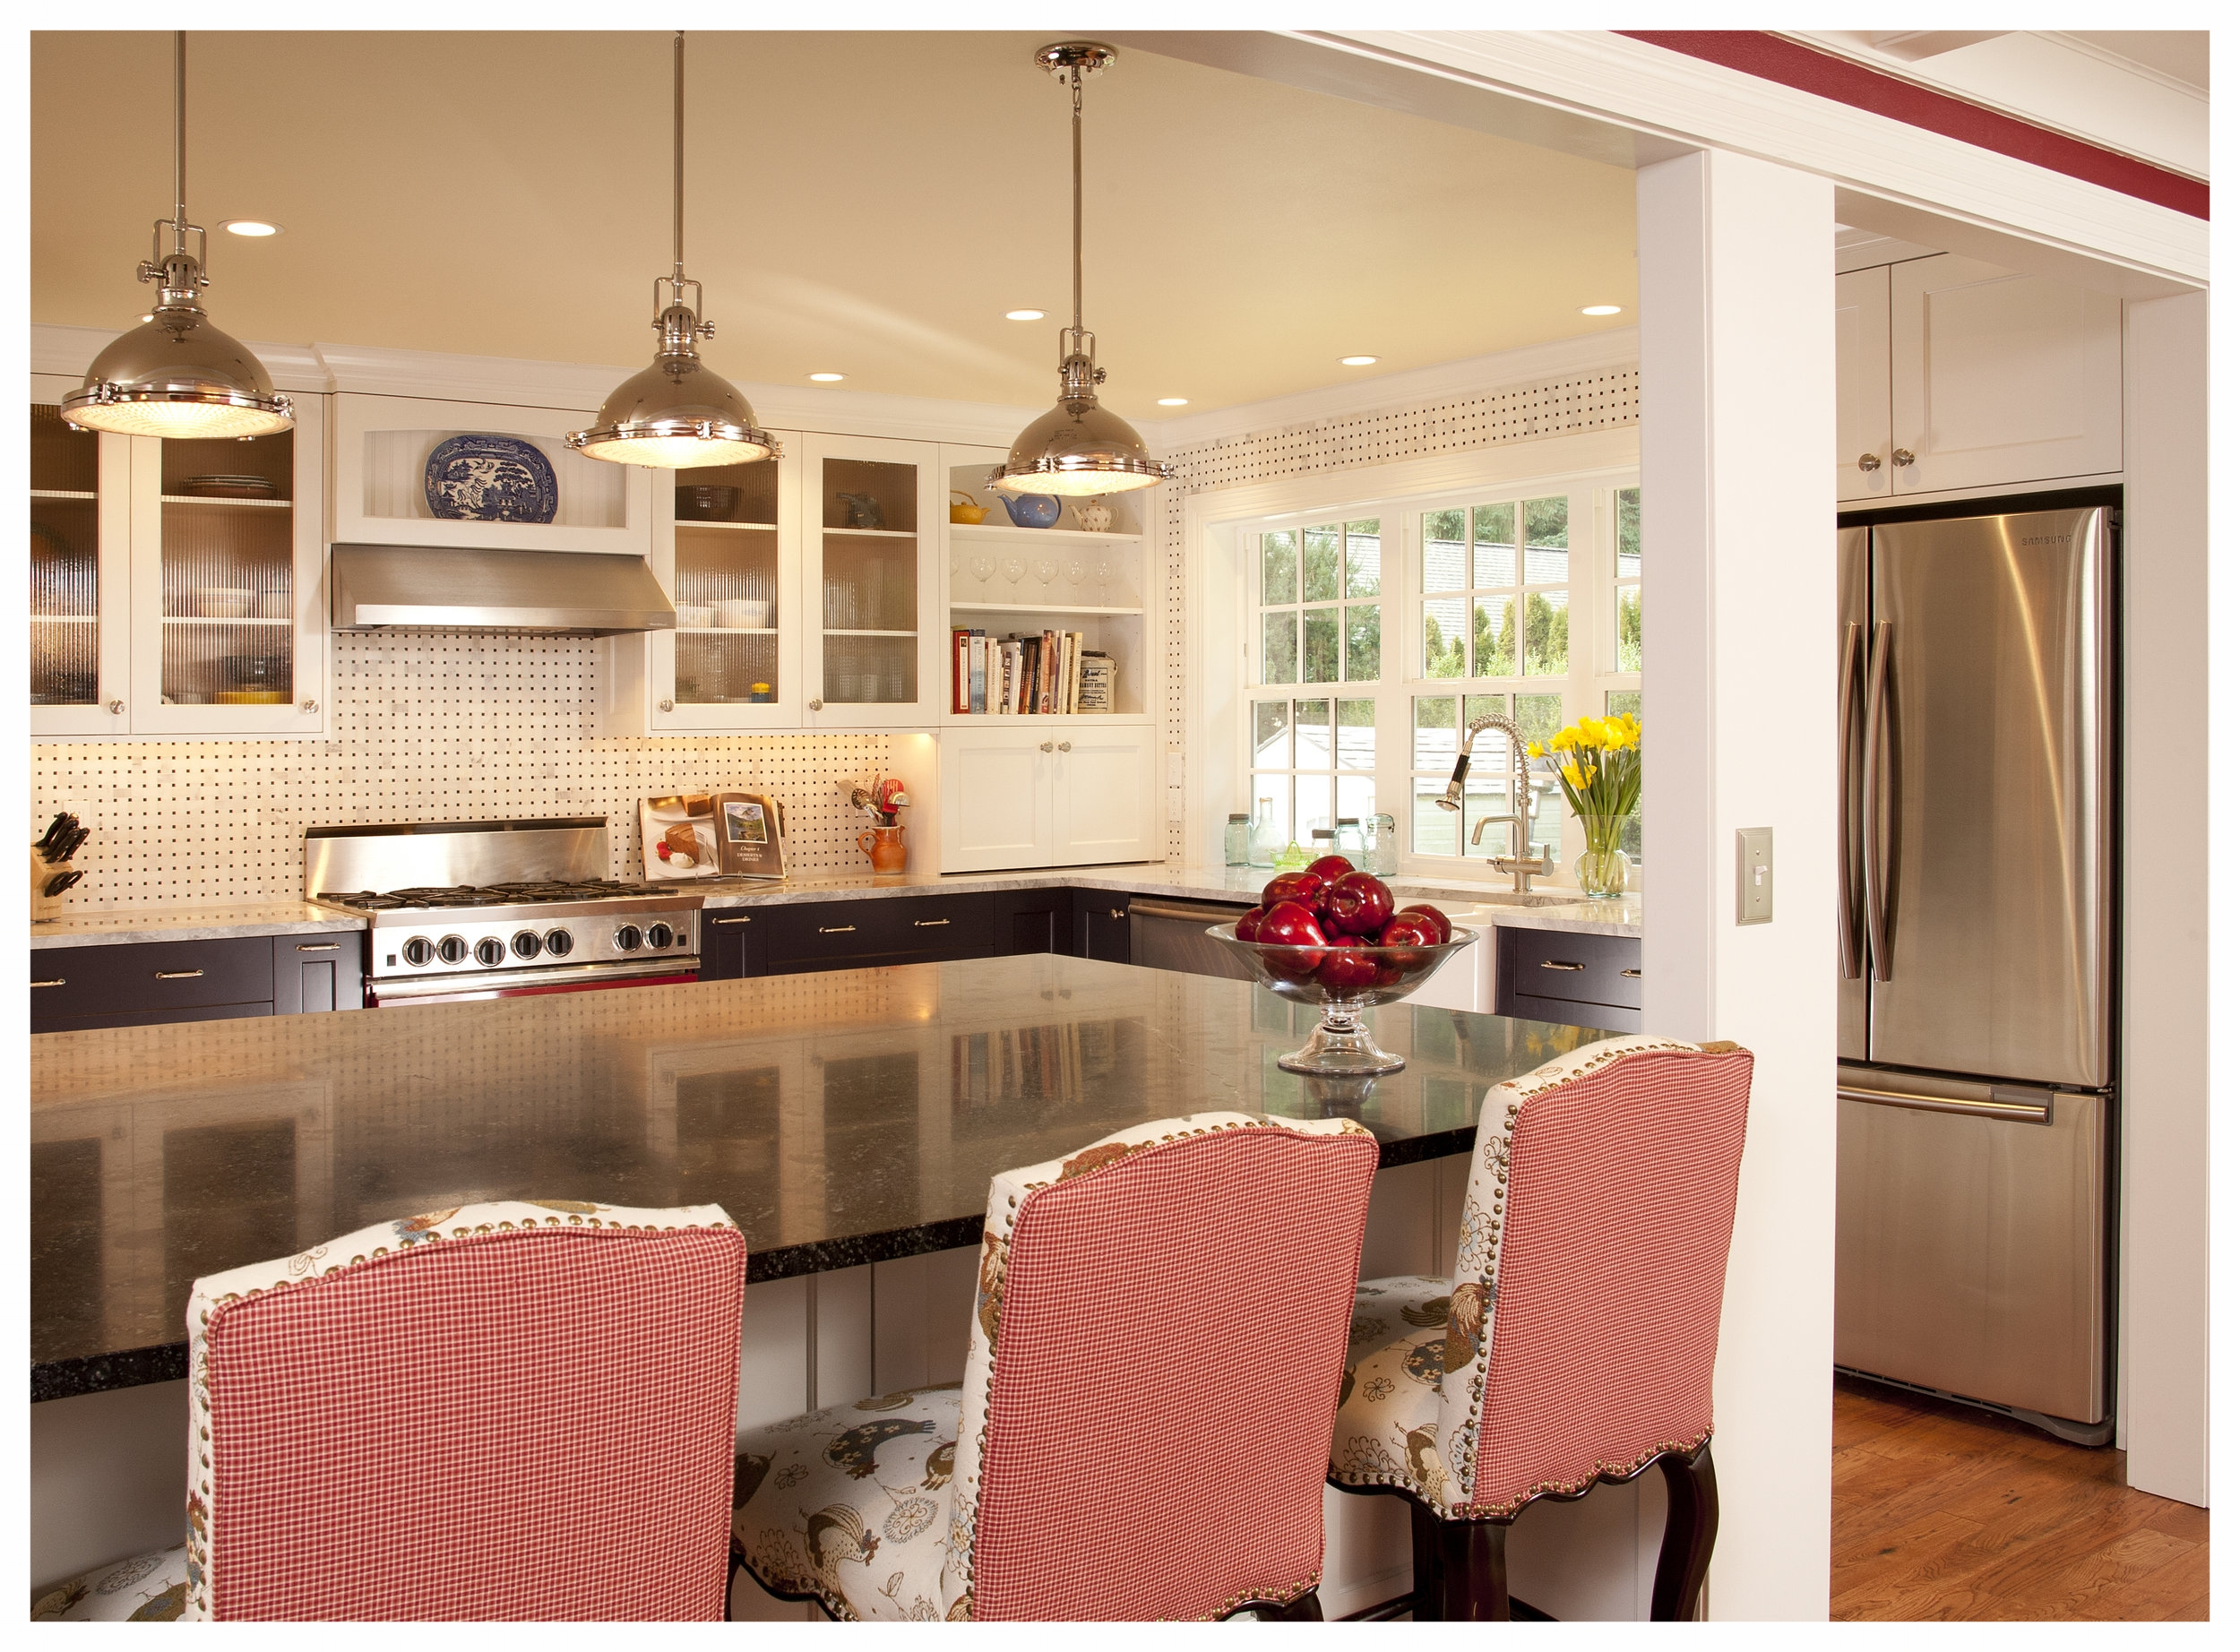 Woodiville Country Kitchen 6.jpg